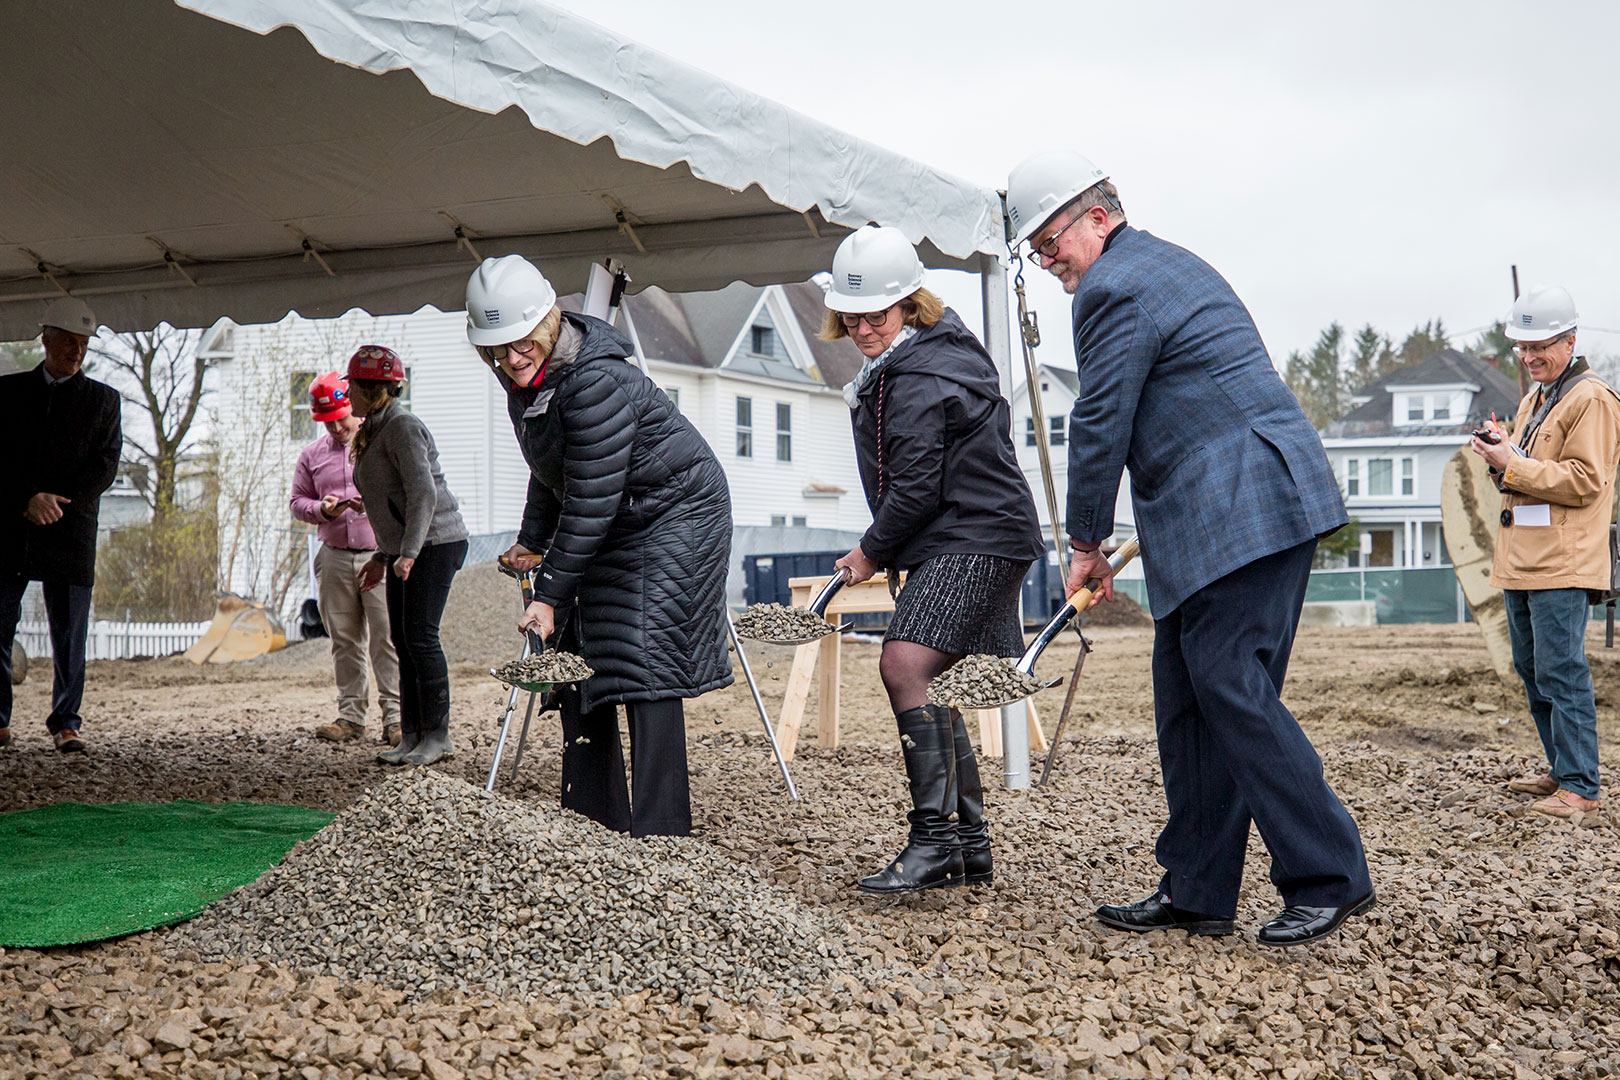 Flinging the ceremonial gravel during the groundbreaking for the Bonney Science are, from left, Bates President Clayton Spencer, Alison Grott Bonney '80, and Michael Bonney '80. At right, a passing stranger takes notes. (Rene Roy for Bates College)